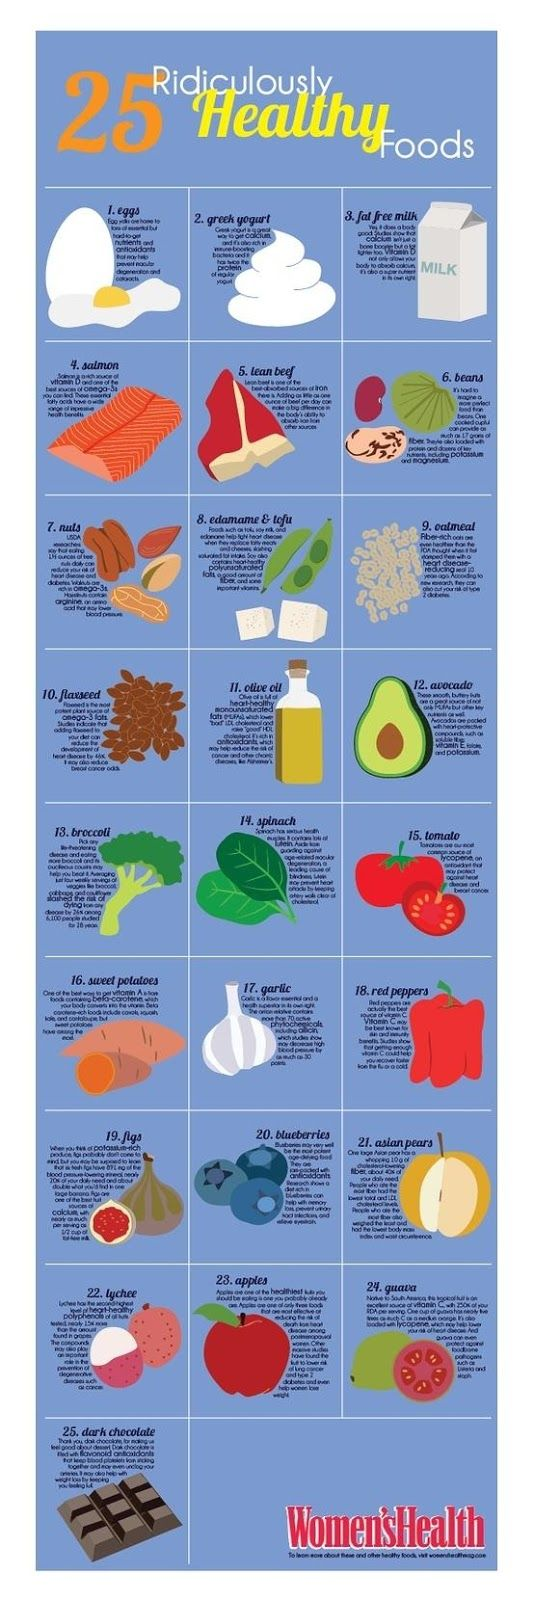 25 #Ridiculously Healthy Foods #Infographics #health #egg #avocado #darkchocolate #yum #healthy #foods #chart #goodmentalhealth #proliancecenter